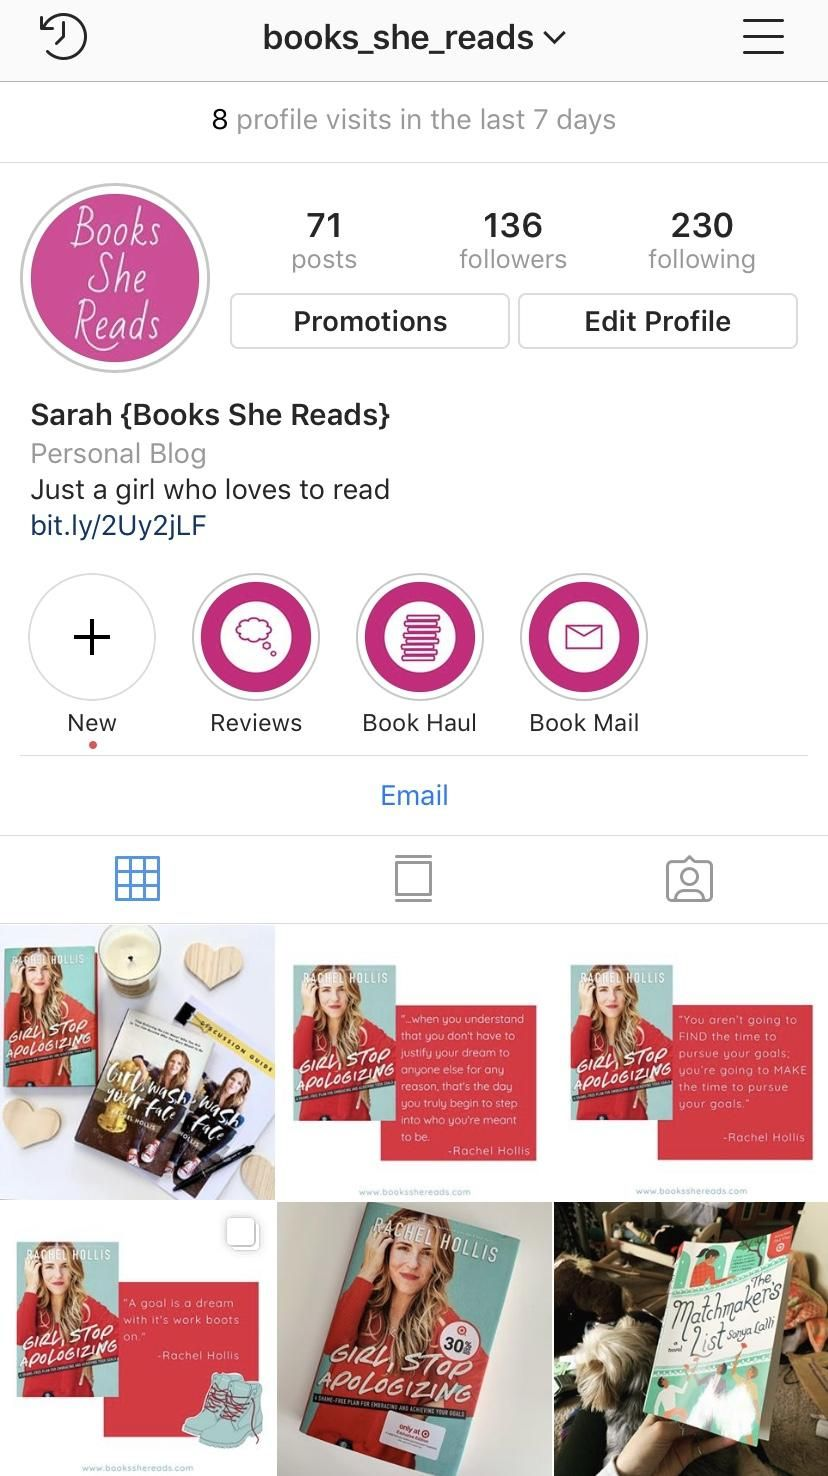 Books_She_Reads Instagram - image 1 - student project